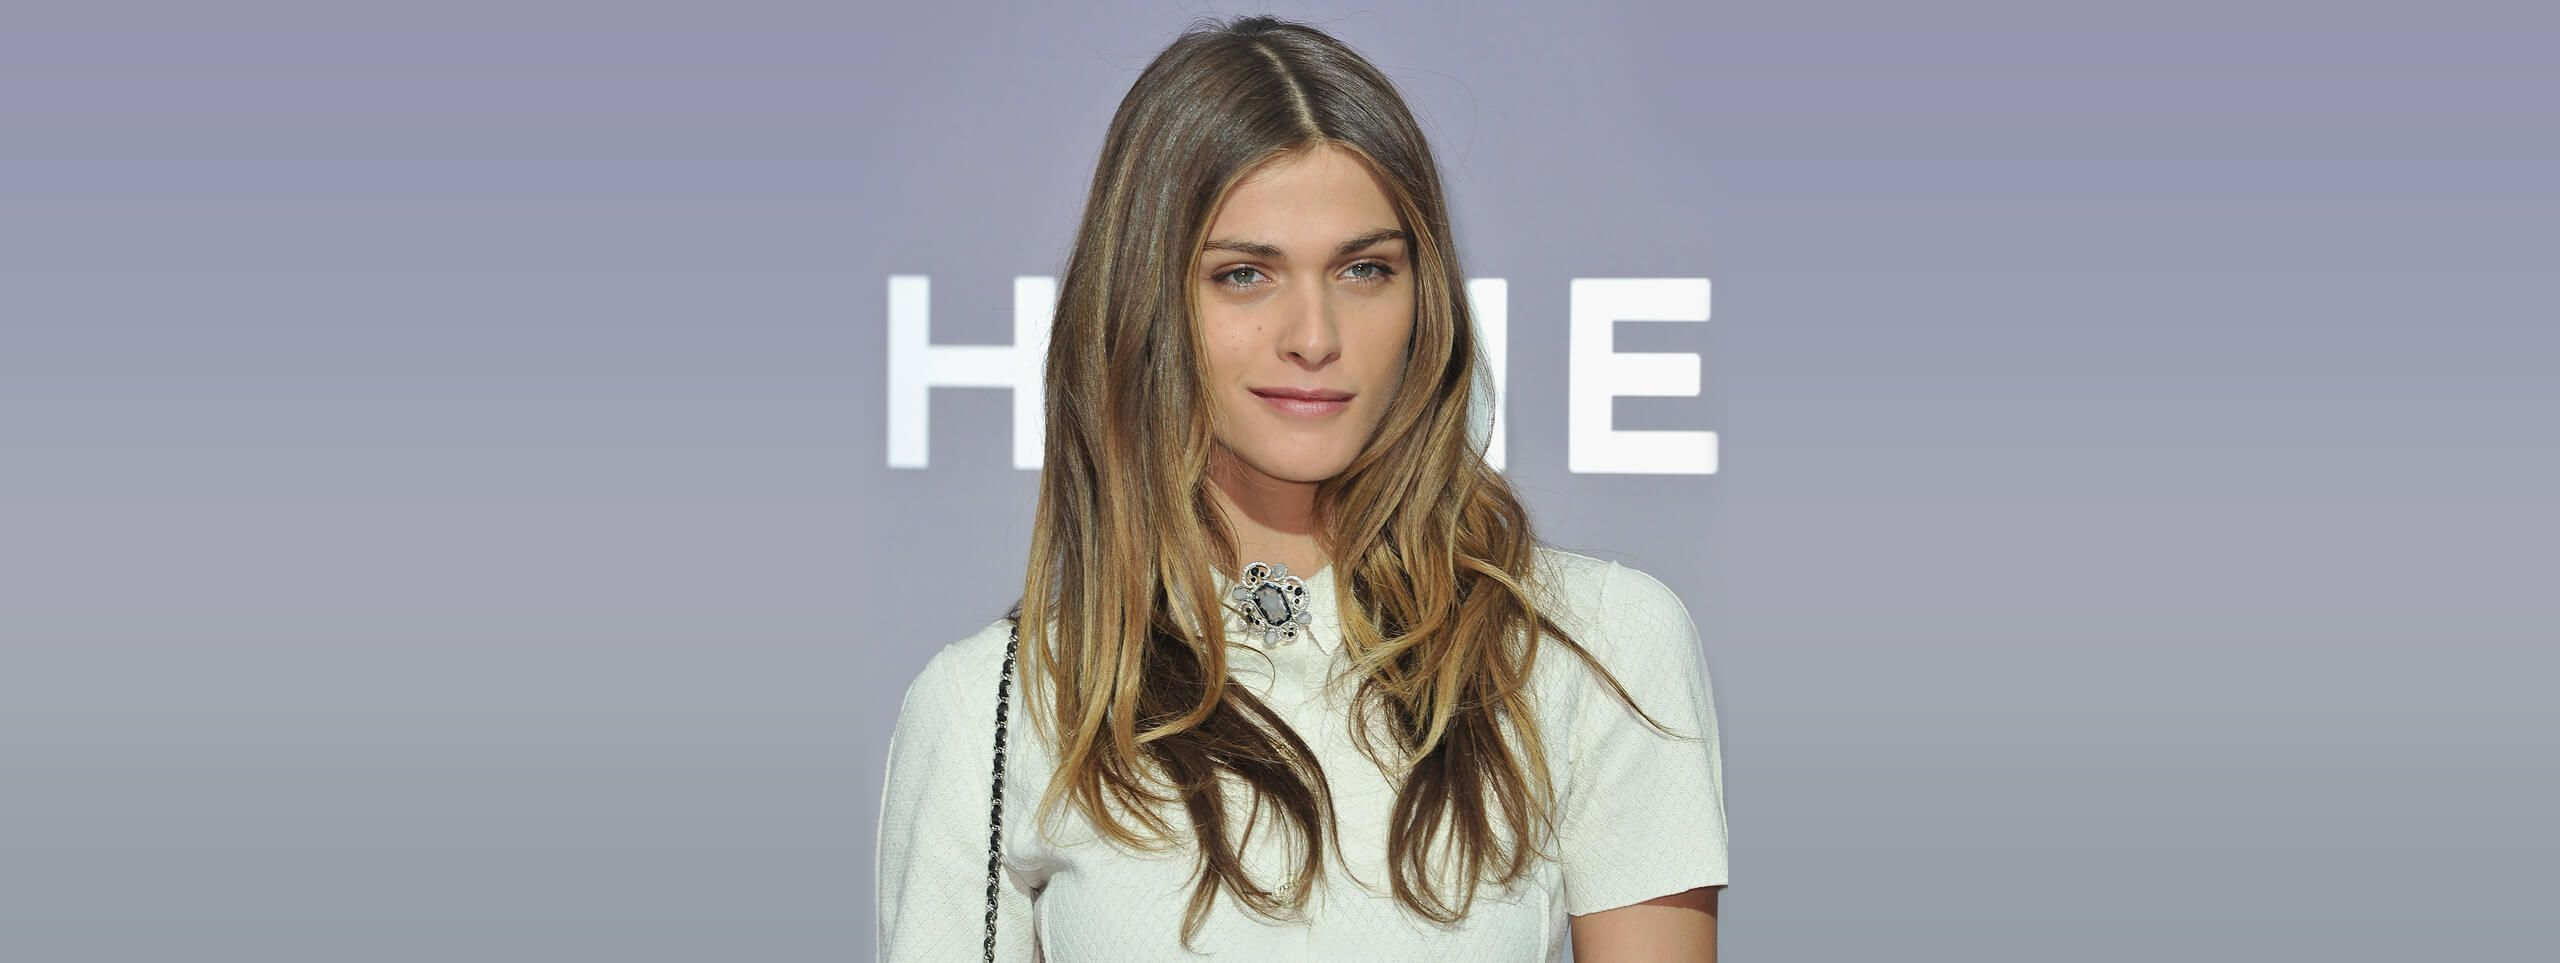 Elisa Sednaoui acconciature onde beach waves